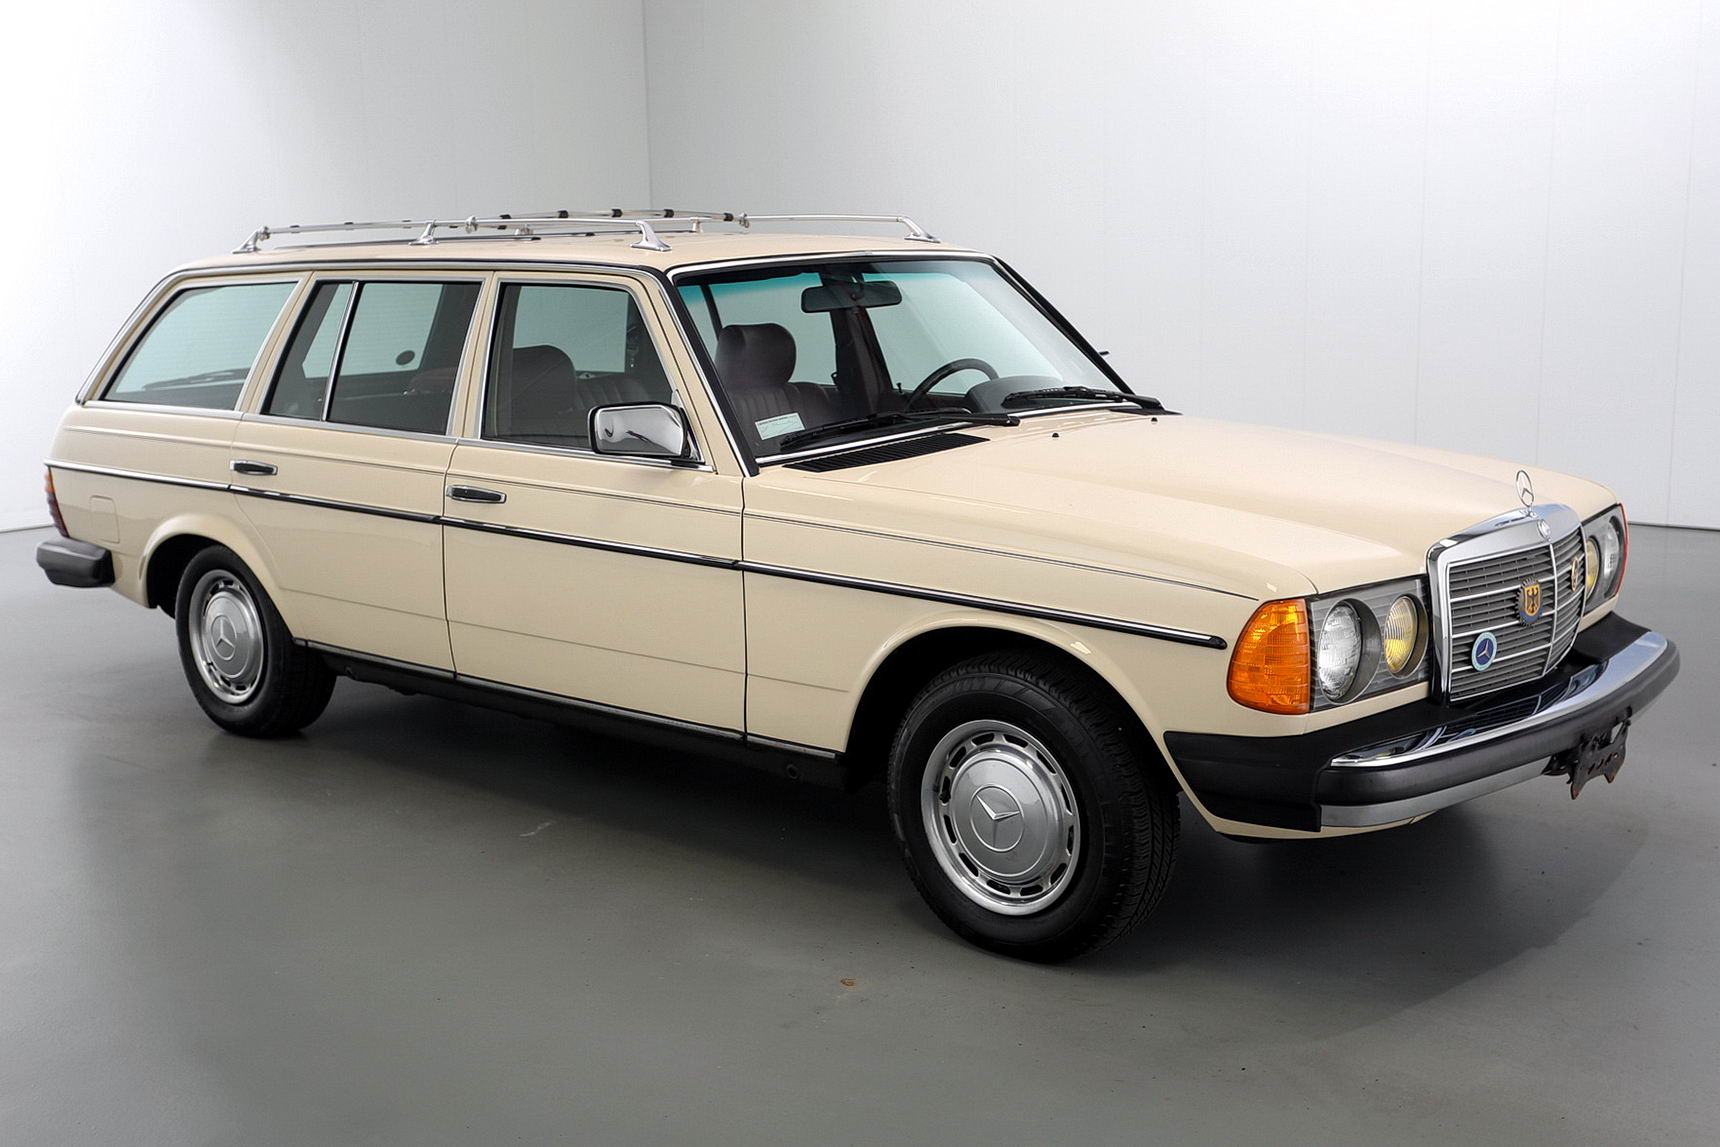 1985 mercedes 300td wagon for sale the wagon for Estate motors mercedes benz